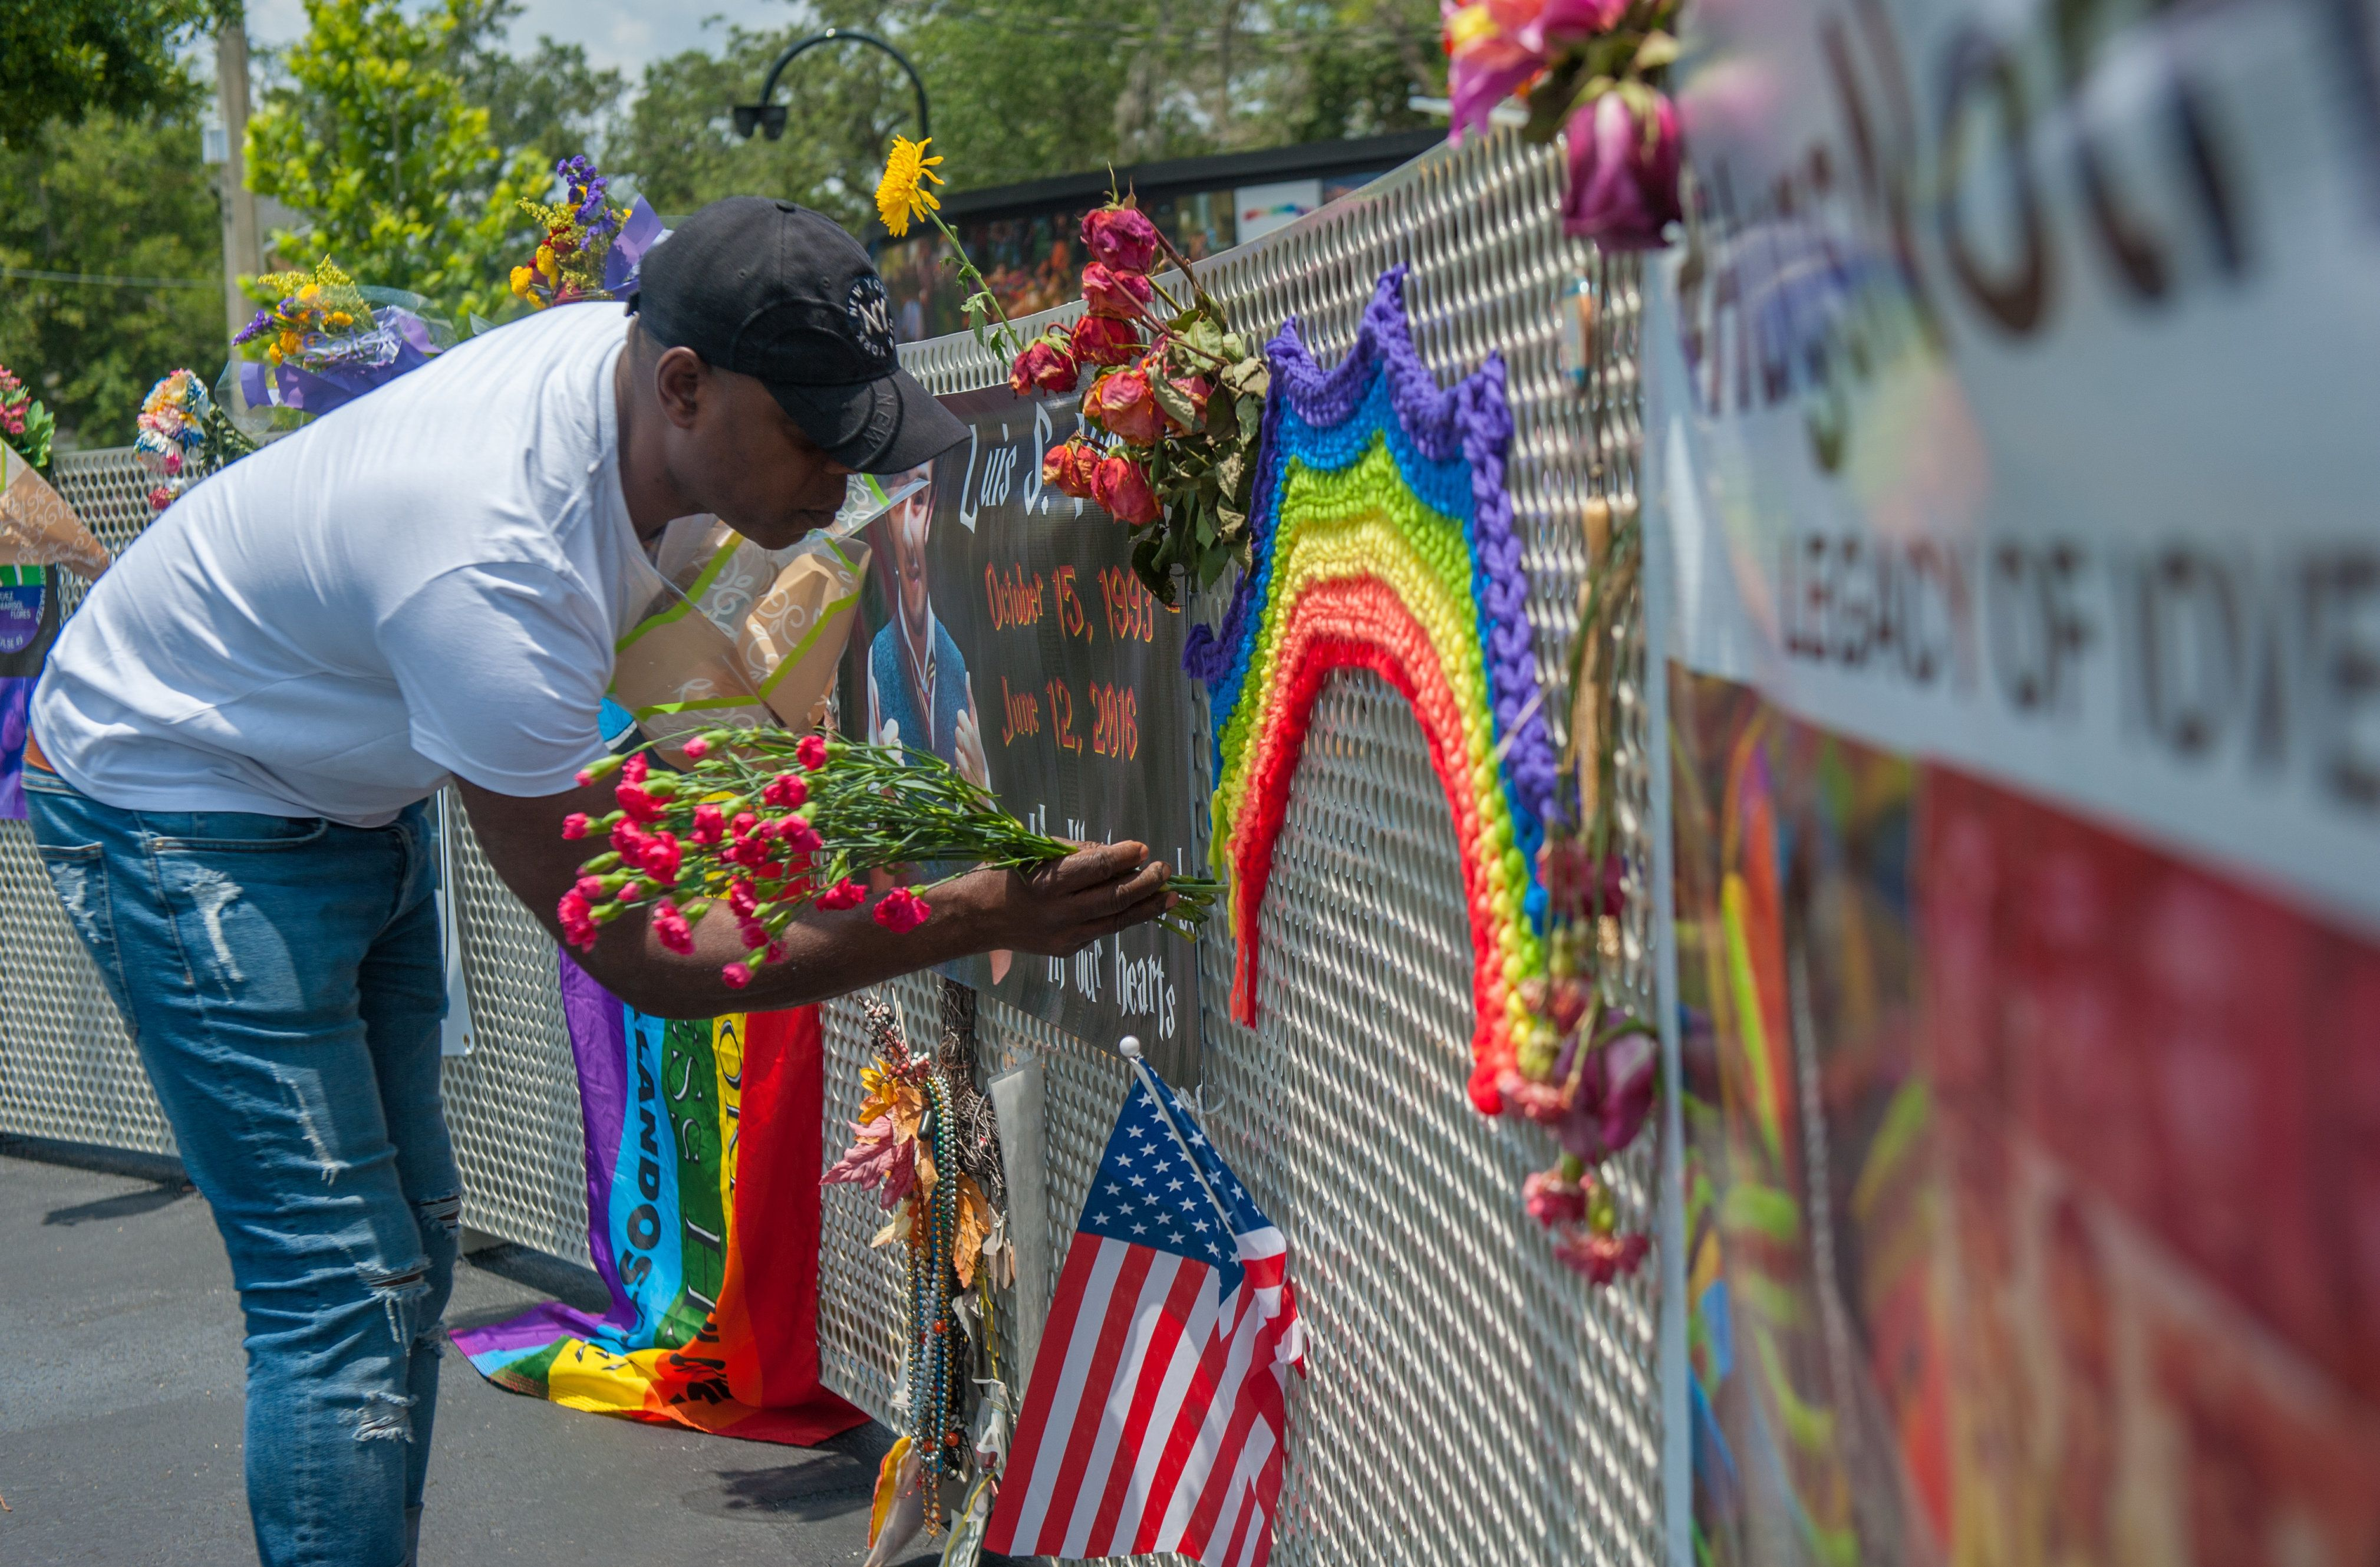 A visitor to the new interim Pulse nightclub memorial leaves flowers in Orlando Florida on June 4, 2018.